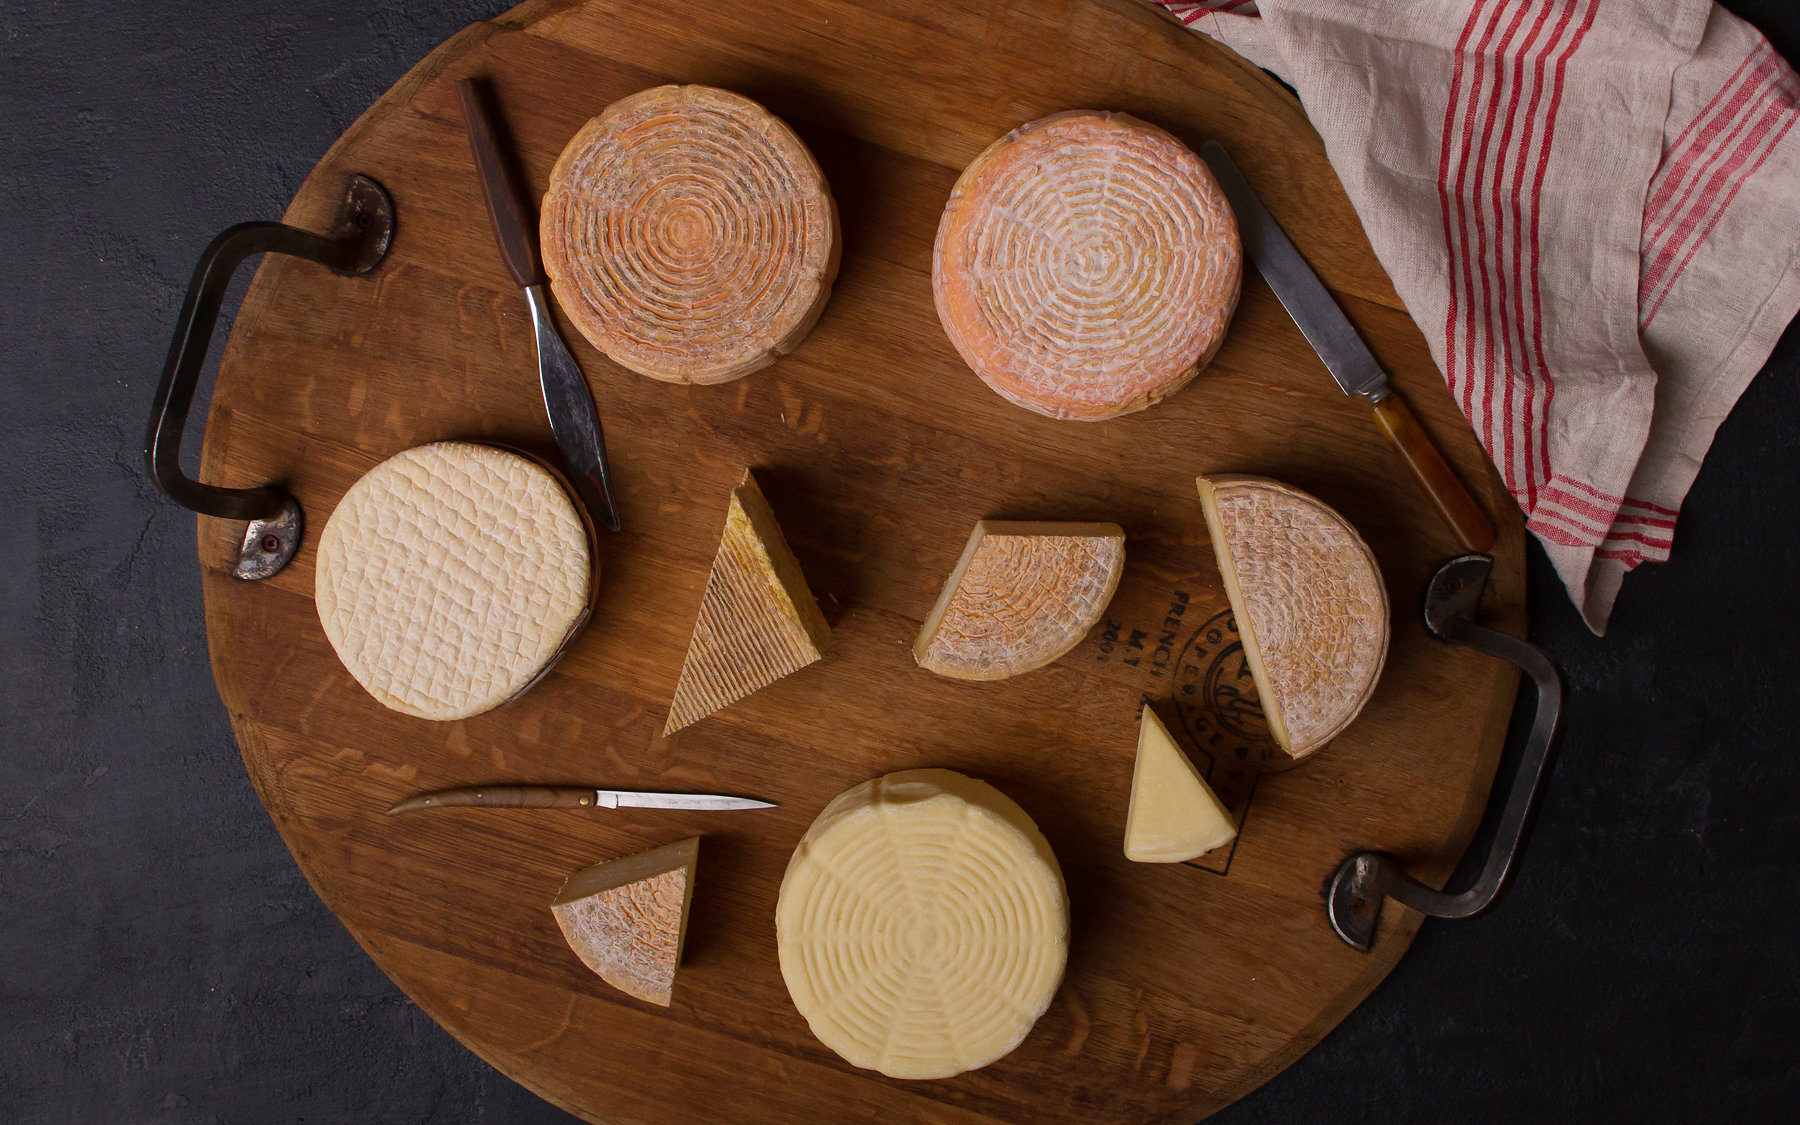 Briar Rose Creamery's Cow's Milk Cheeses